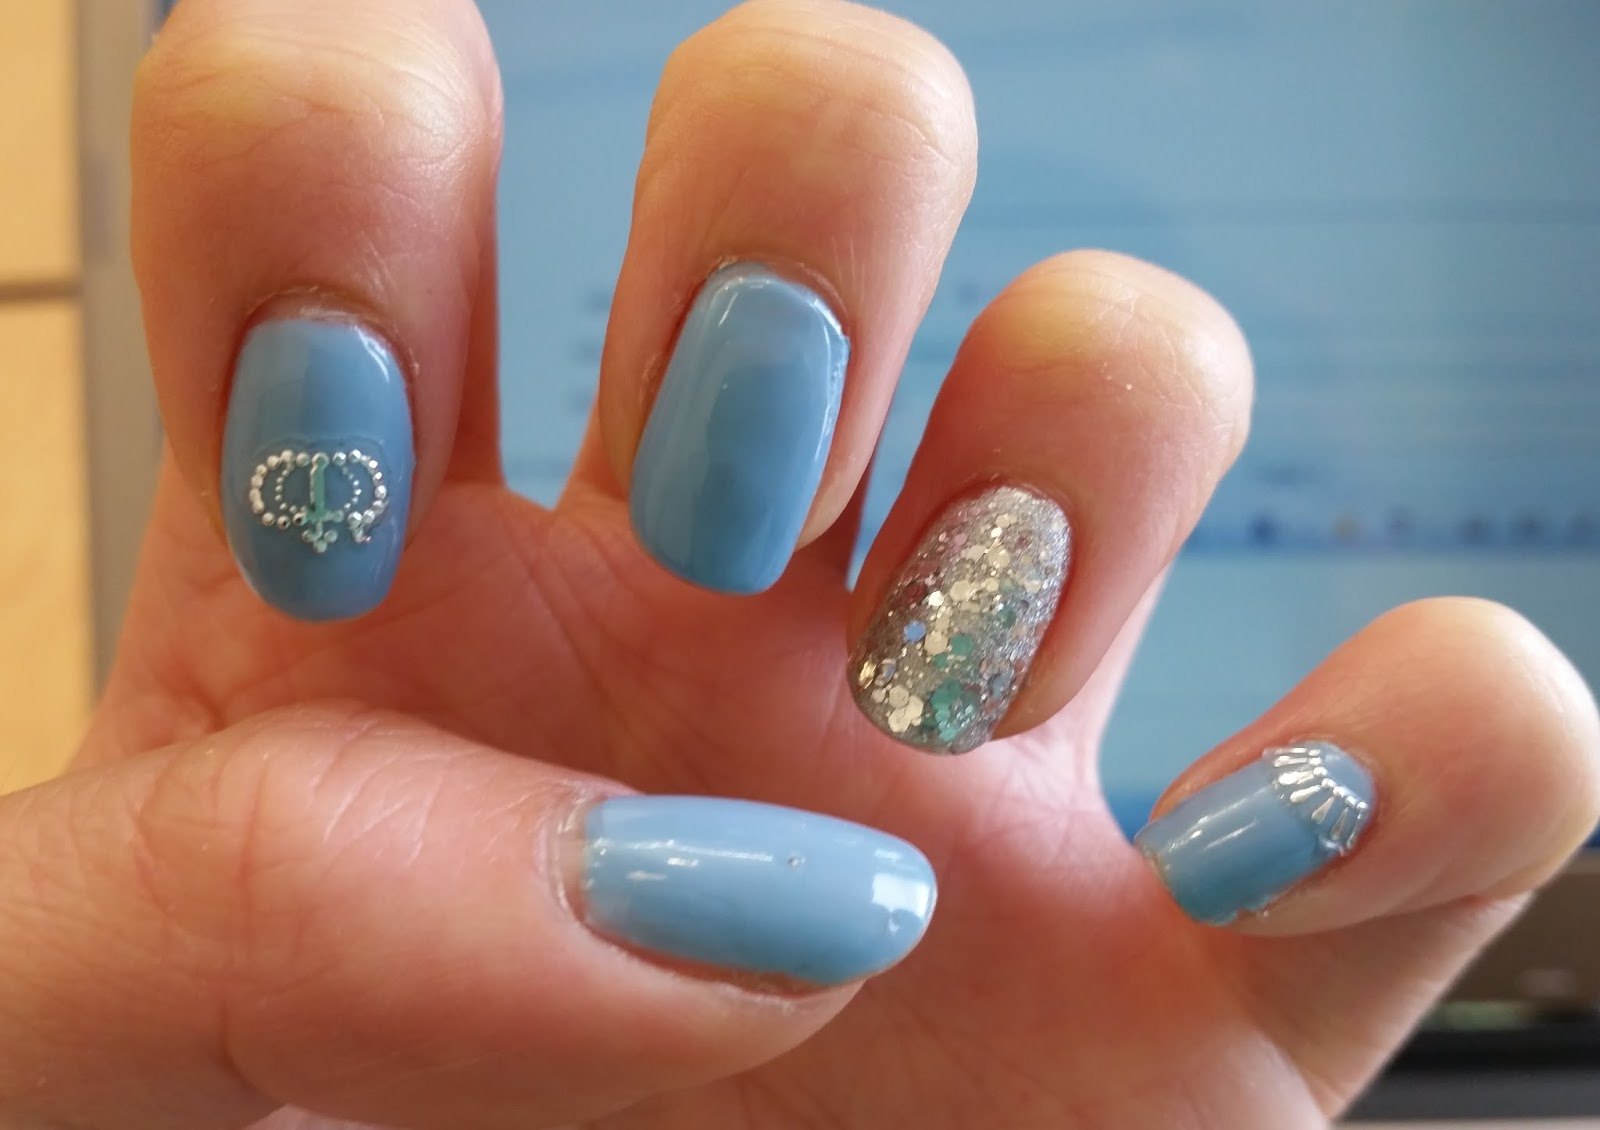 Beauty in Everyday Life: Disney Princess Series Nail Art: Cinderella